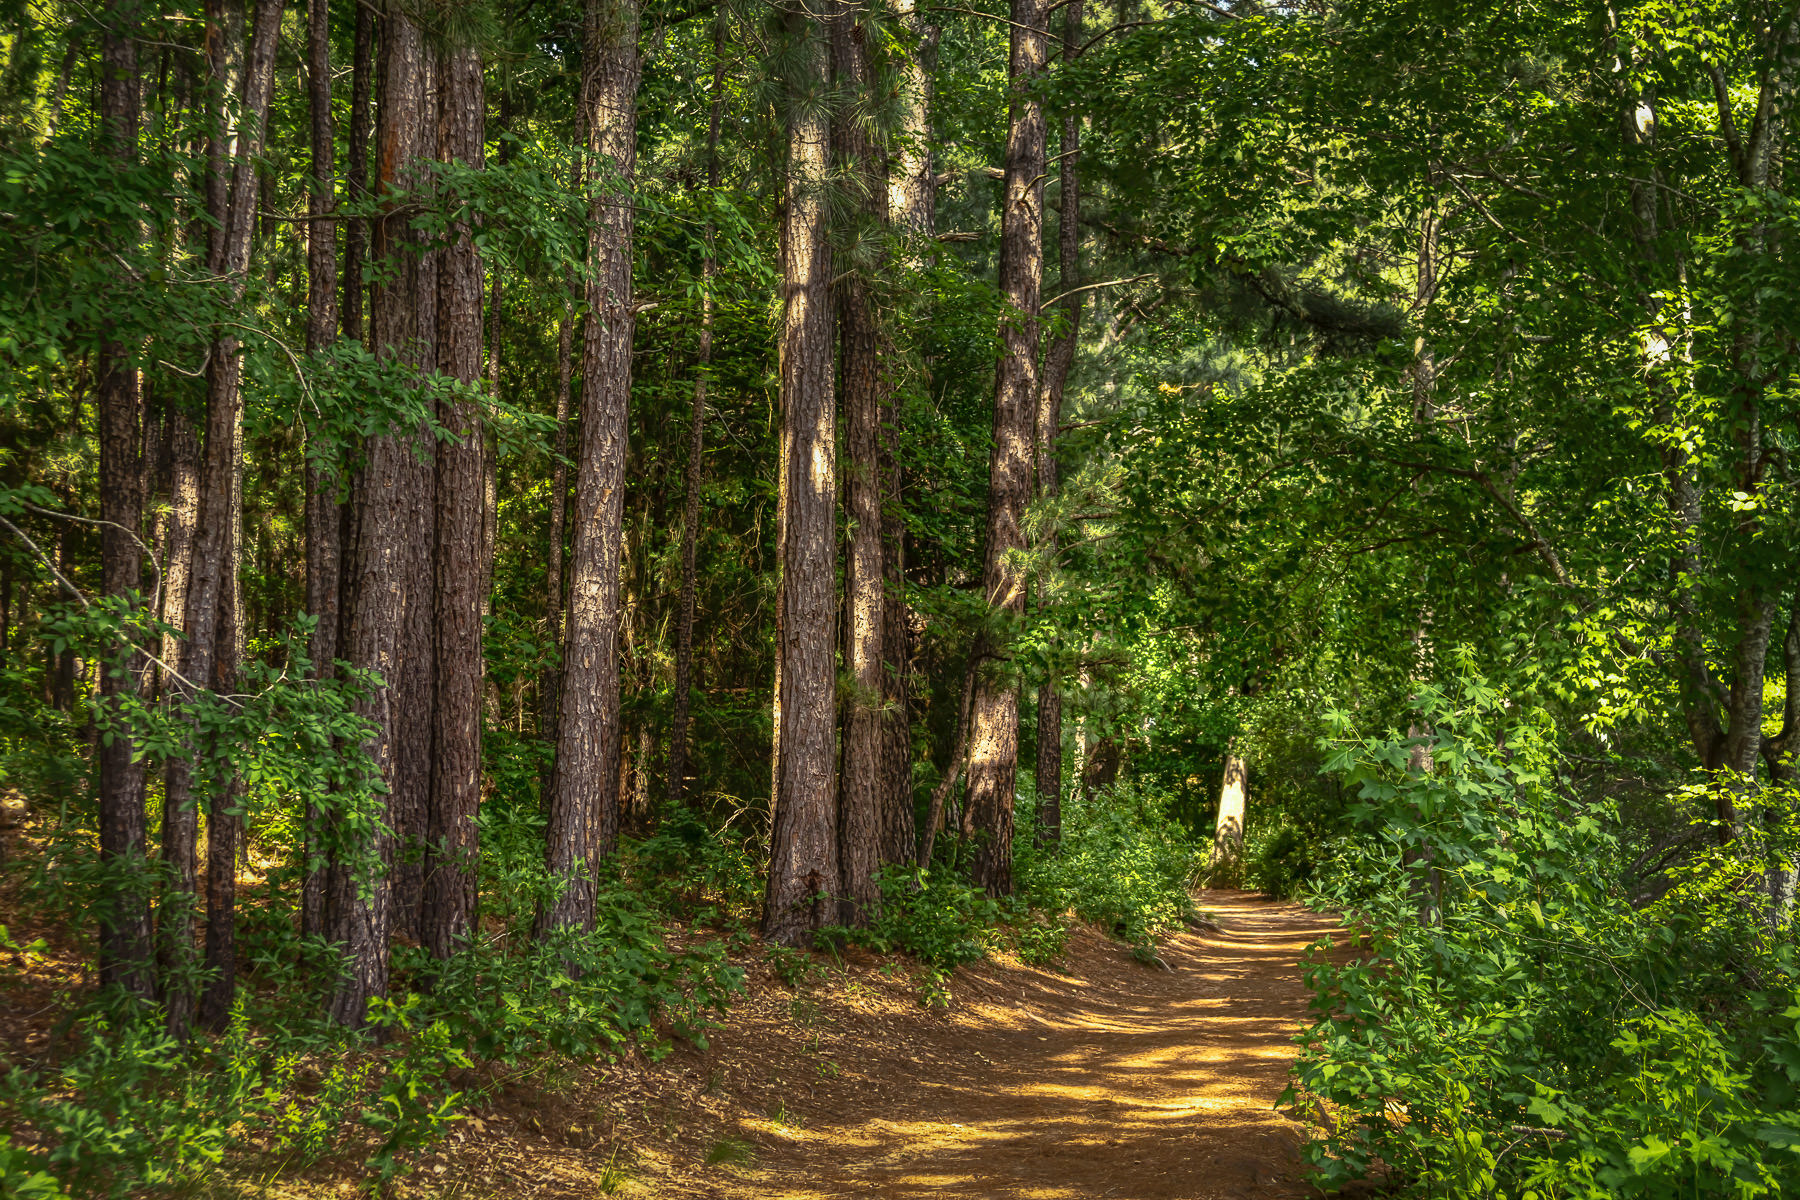 A trail through the forest at Tyler State Park, Texas.